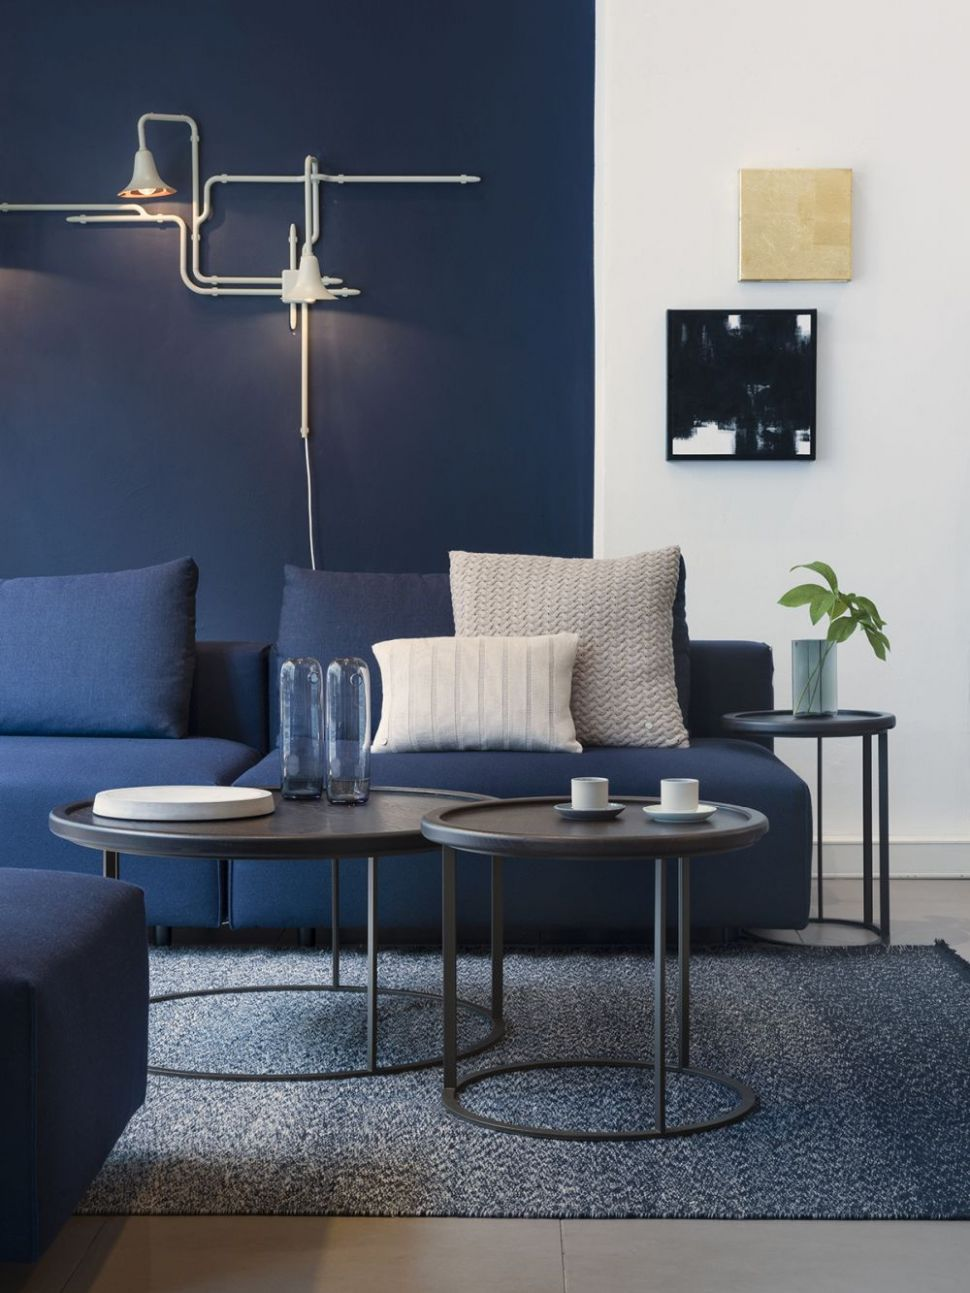 9 Beautiful Blue Rooms - Ideas To Decorate With Blue - living room ideas blue